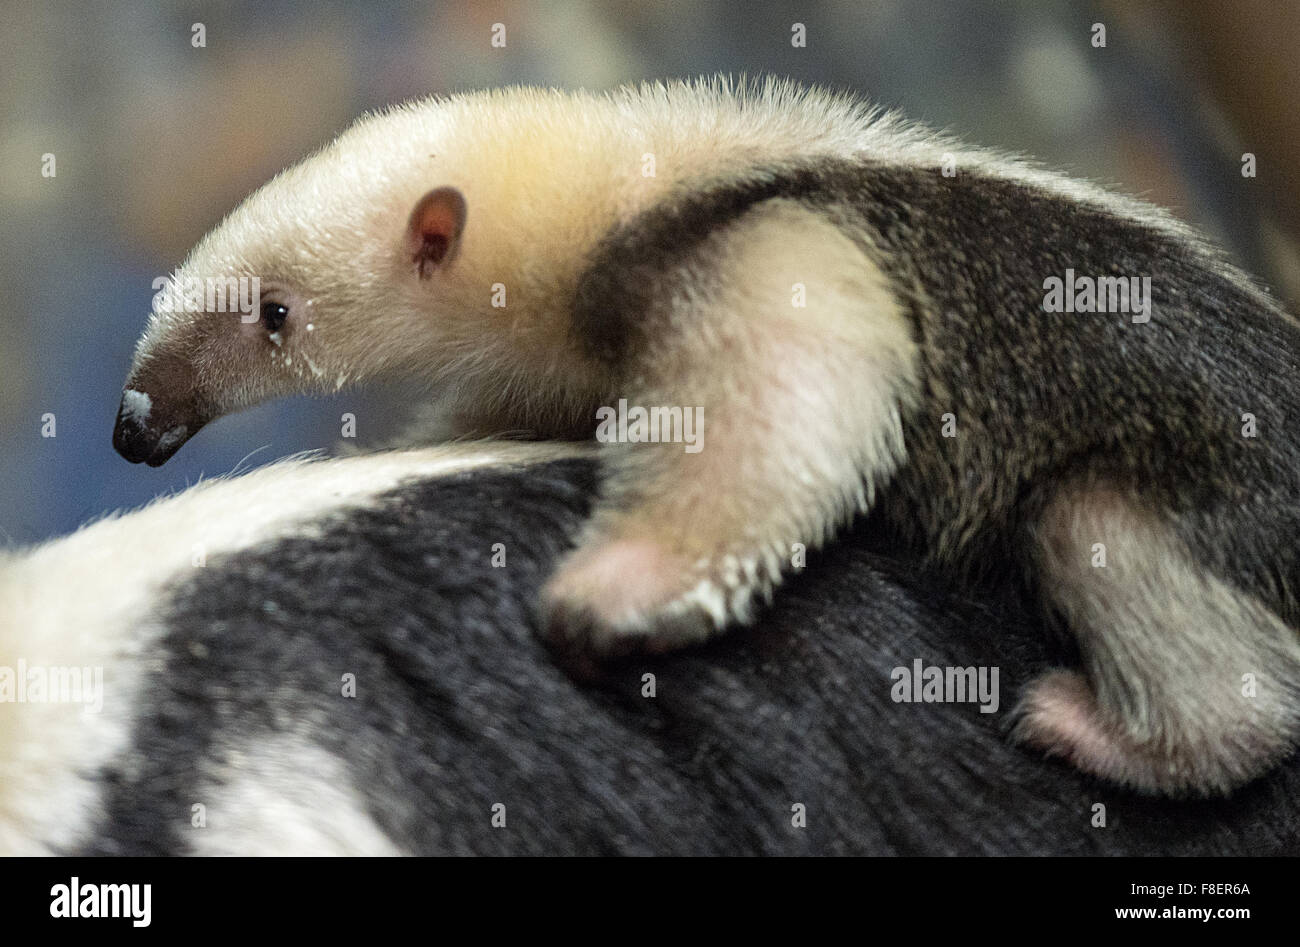 Frankfurt zoo, Germany. 9th December, 2015. The two-month-old tamandua (lesser anteater) climbs on its mother's - Stock Image